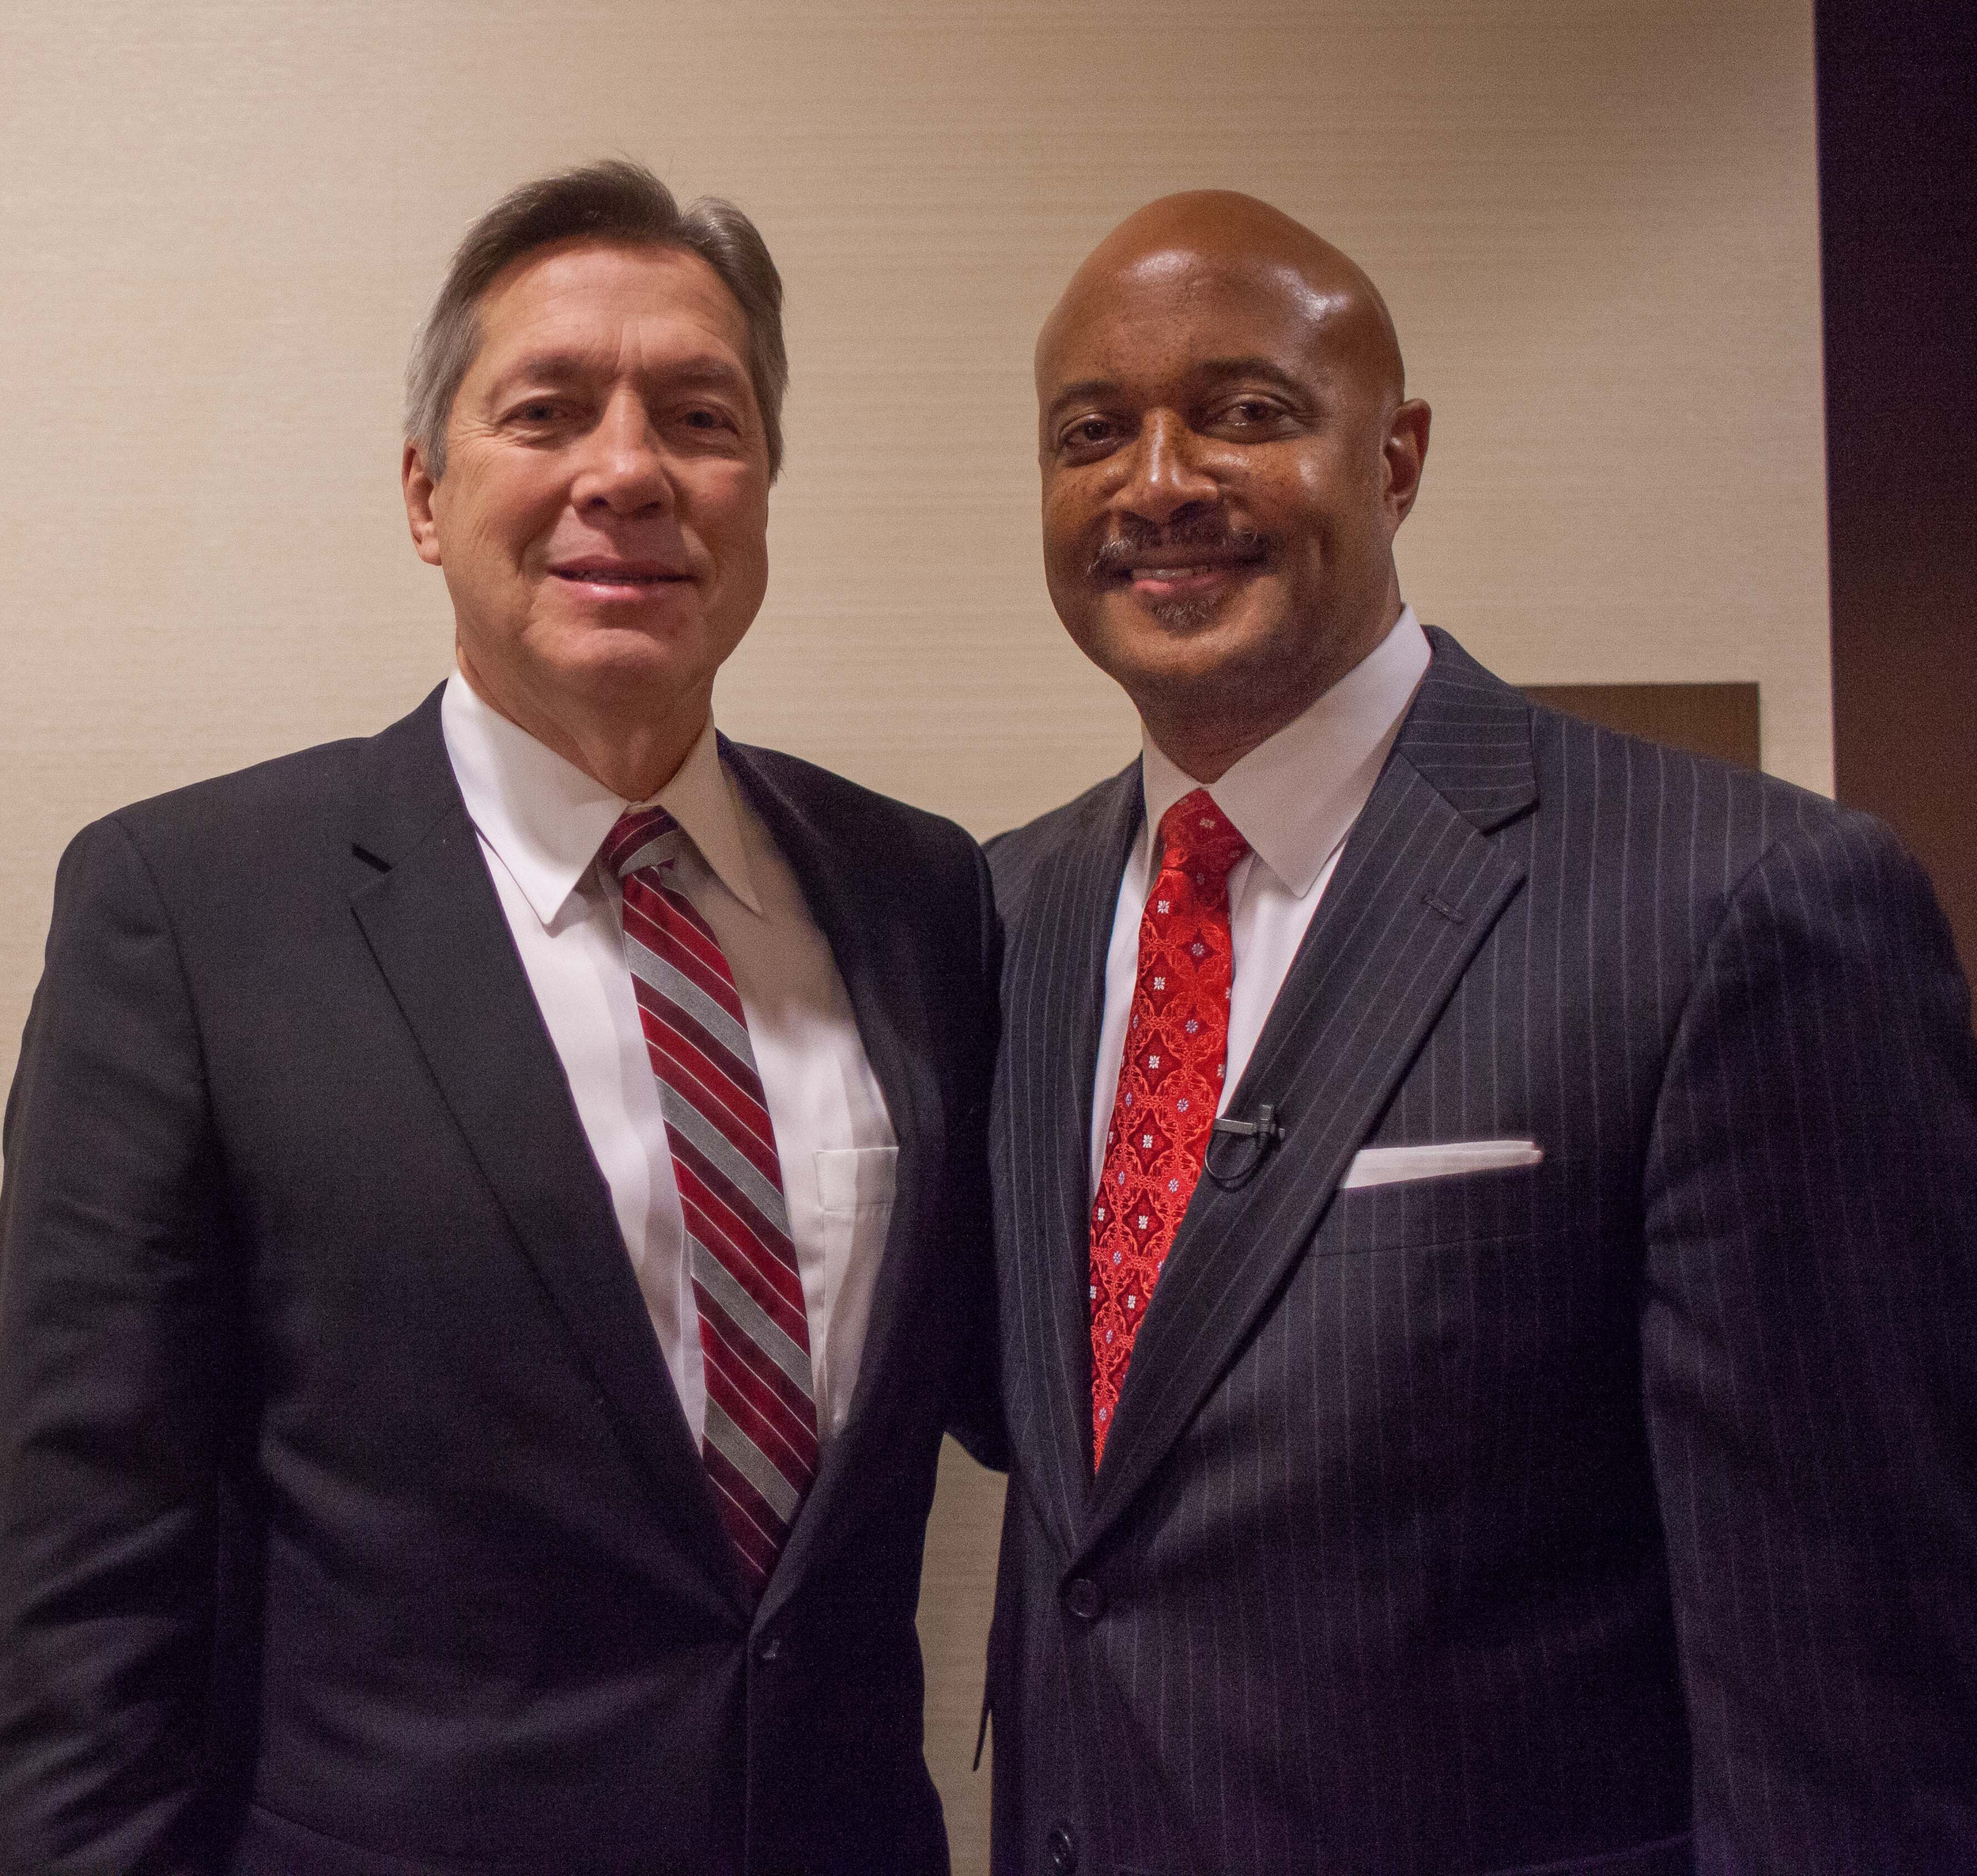 Rodney Cummings endorses Curtis Hill for Attorney General.